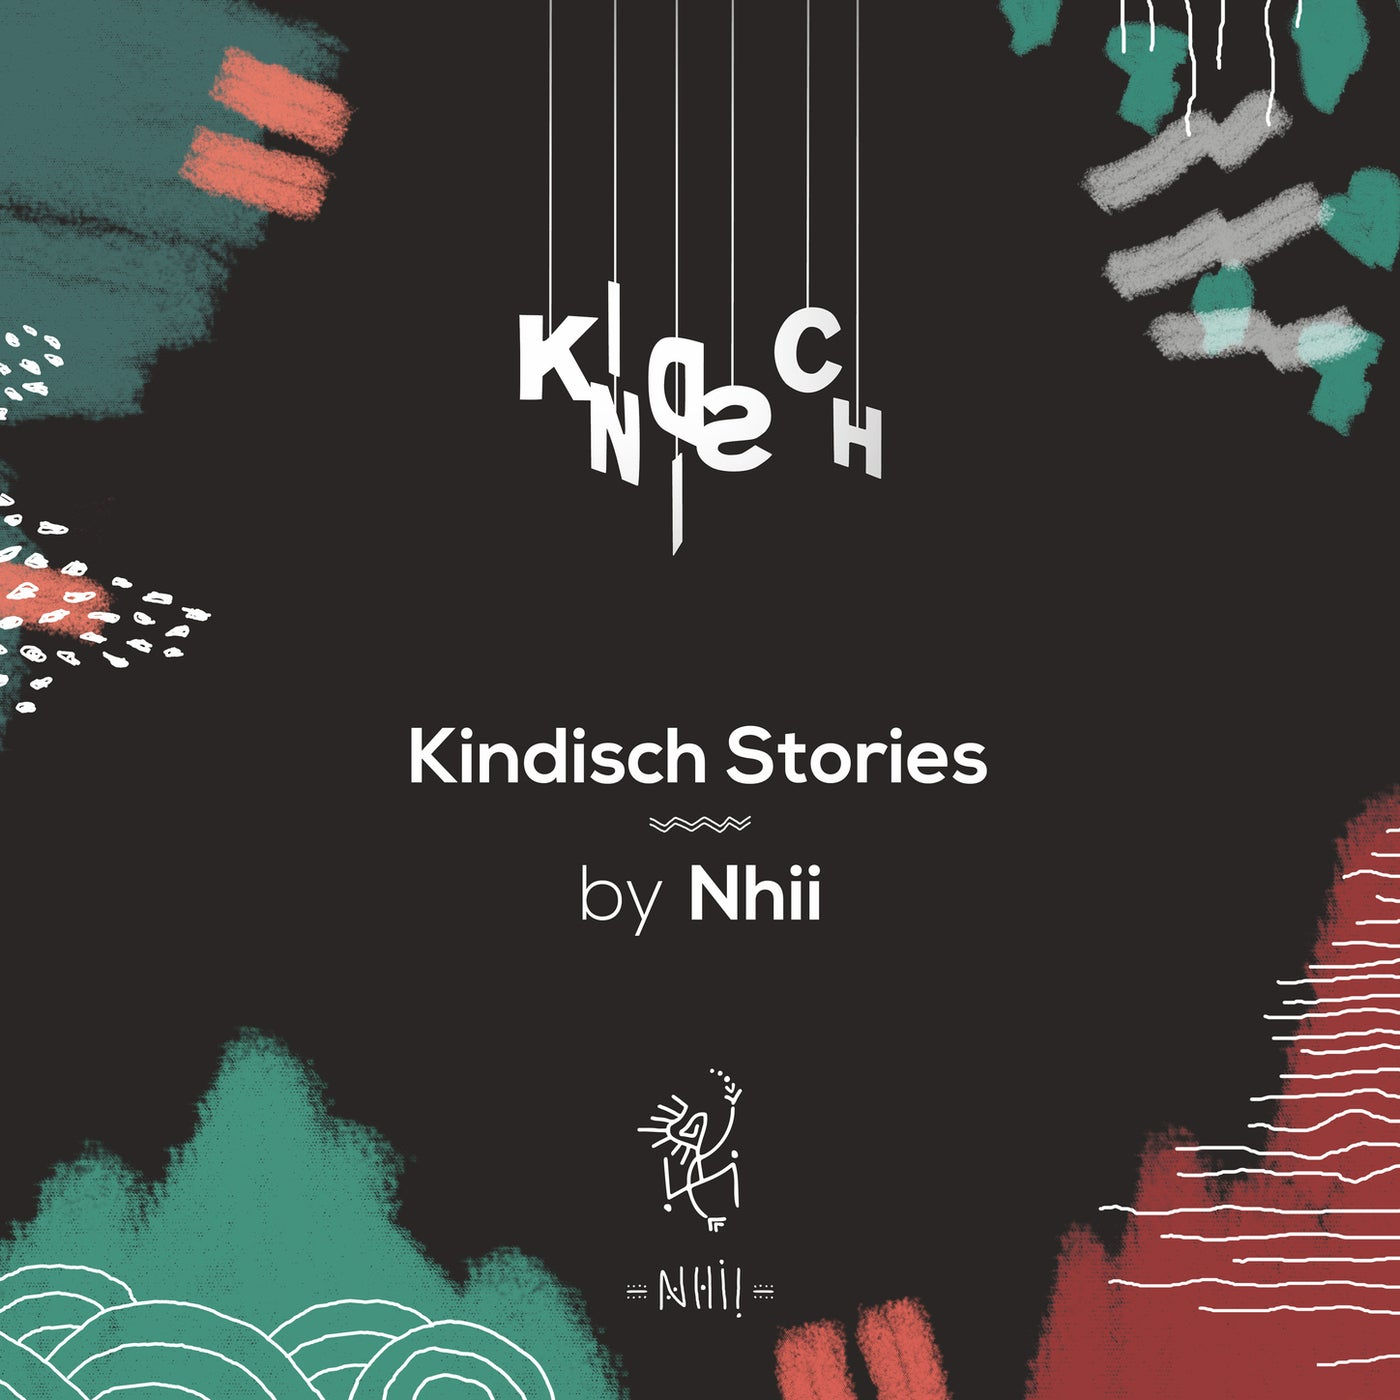 Download Kindisch Stories by Nhii on Electrobuzz